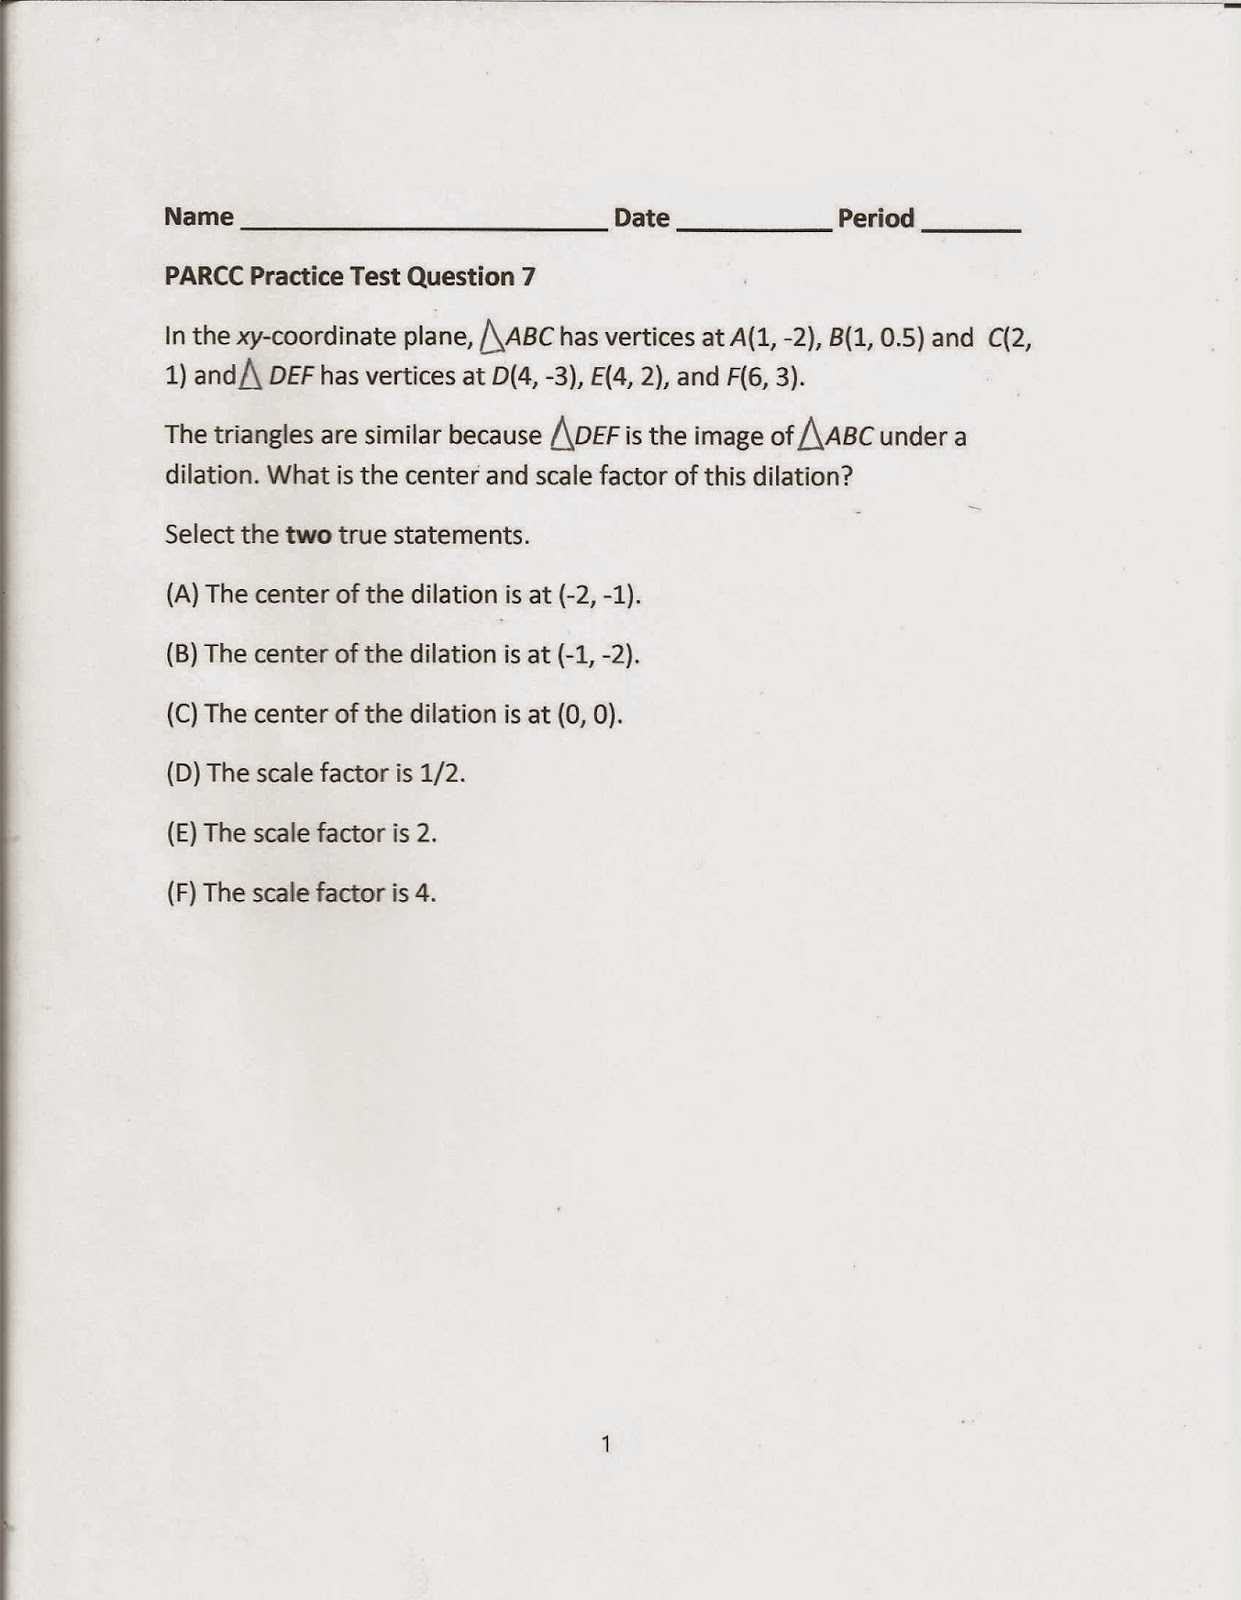 Geometry Worksheet Congruent Triangles Sss and Sas Answers or Geometry Mon Core Style April 2015